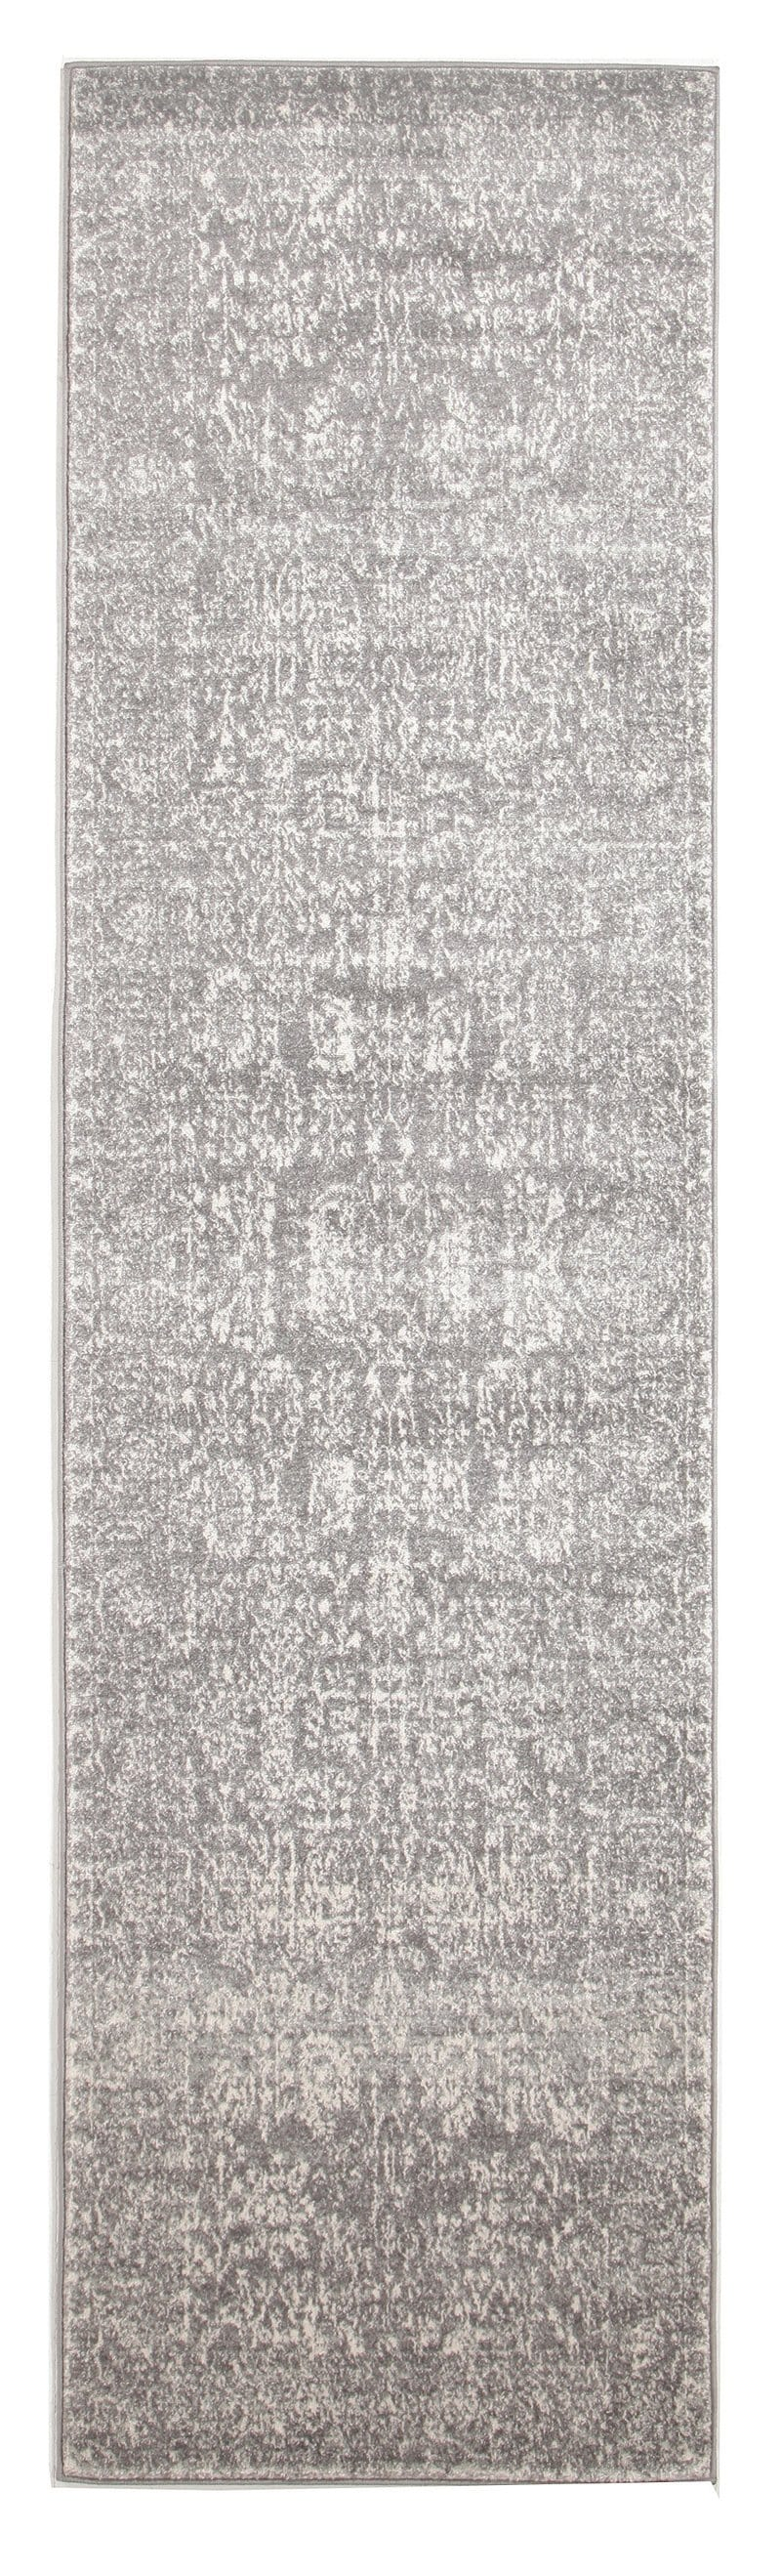 Almeria Soft Grey & White Persian Runner Rug